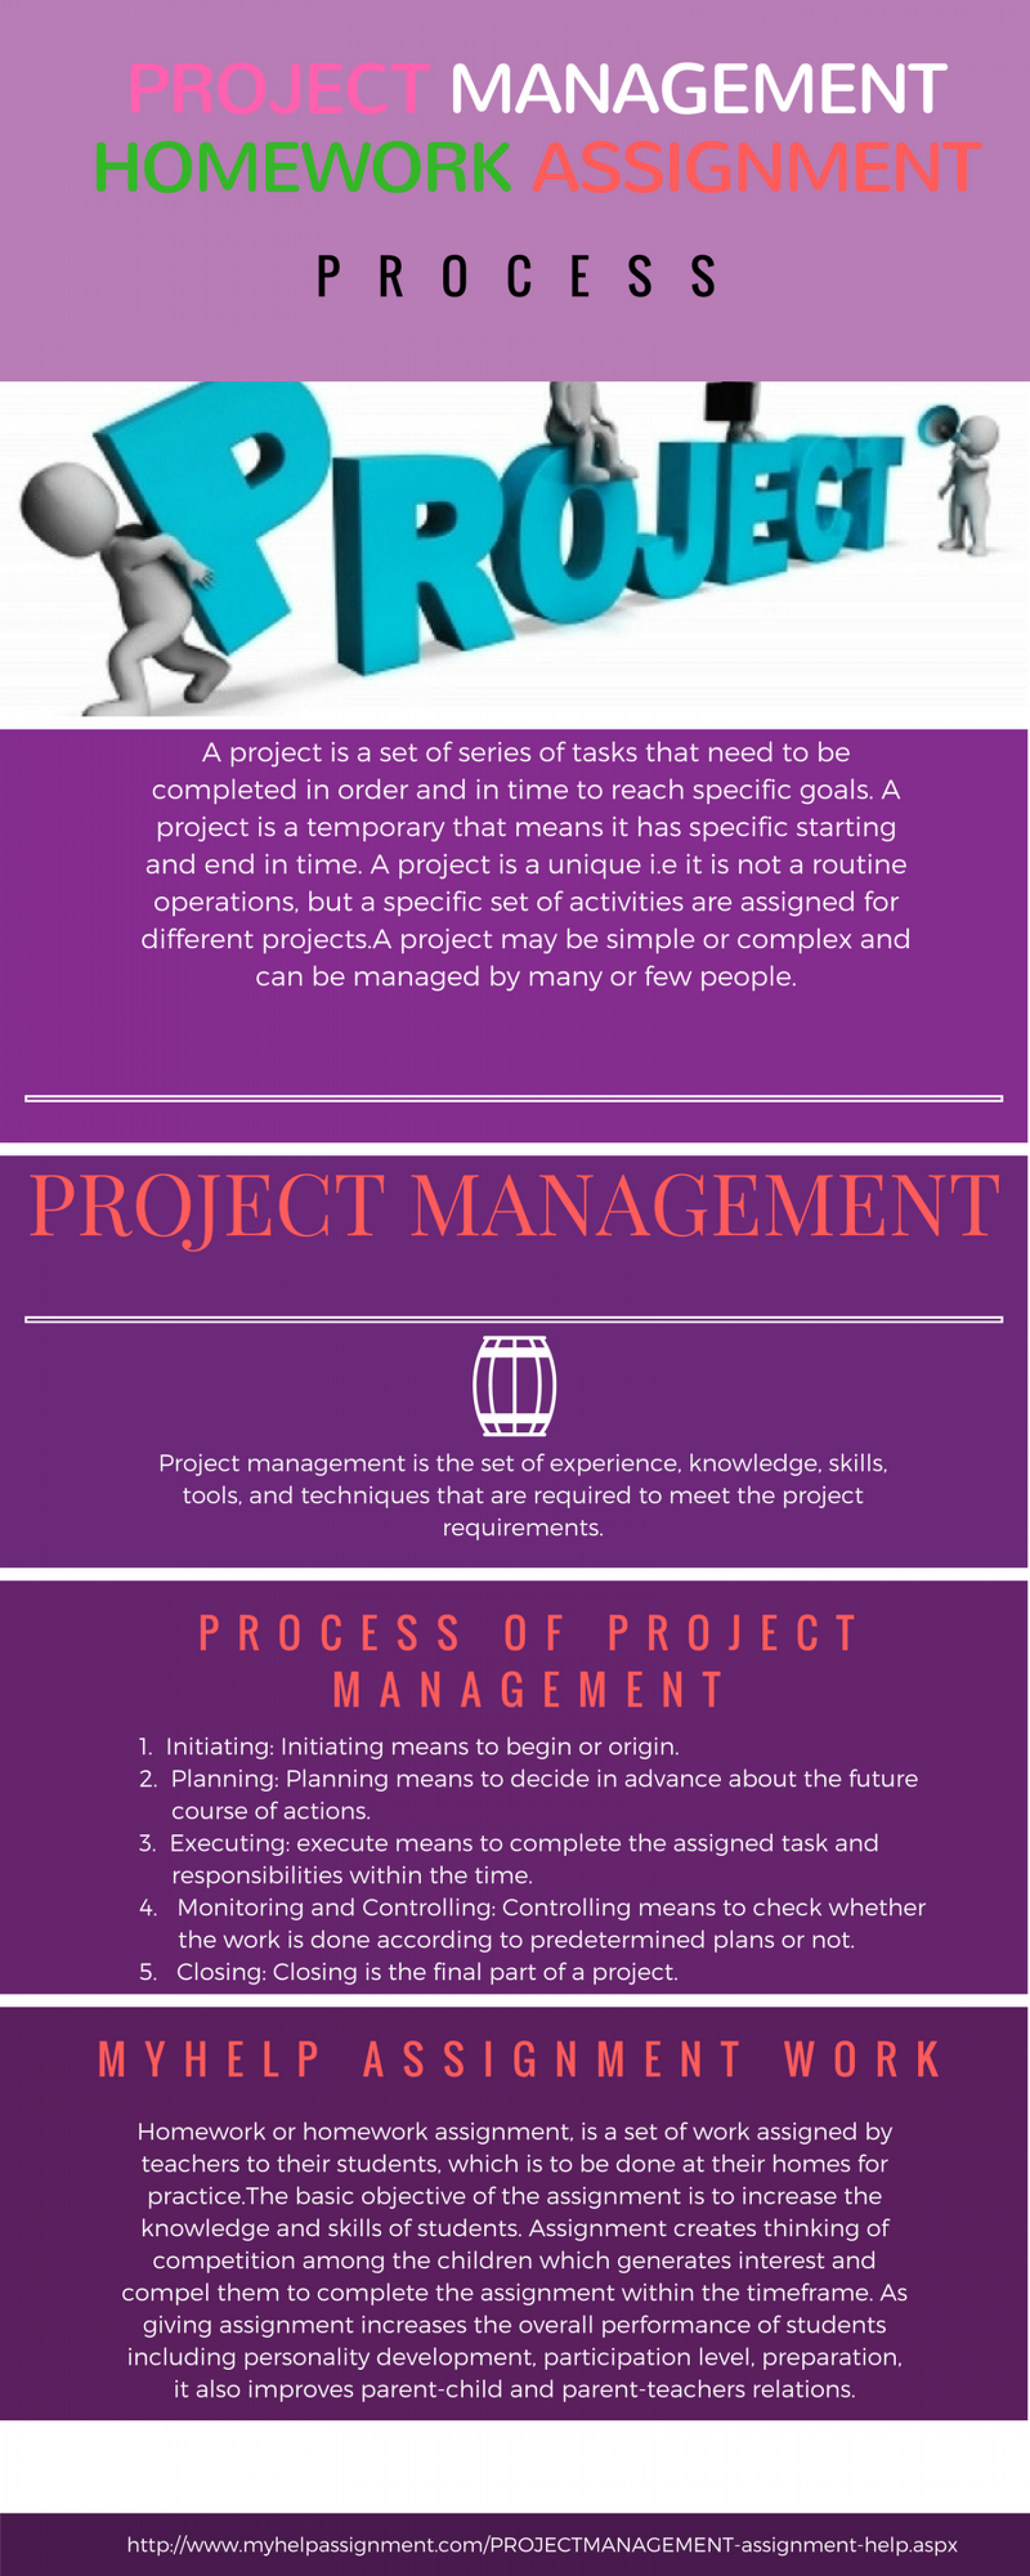 Project Management homework assignment Infographic